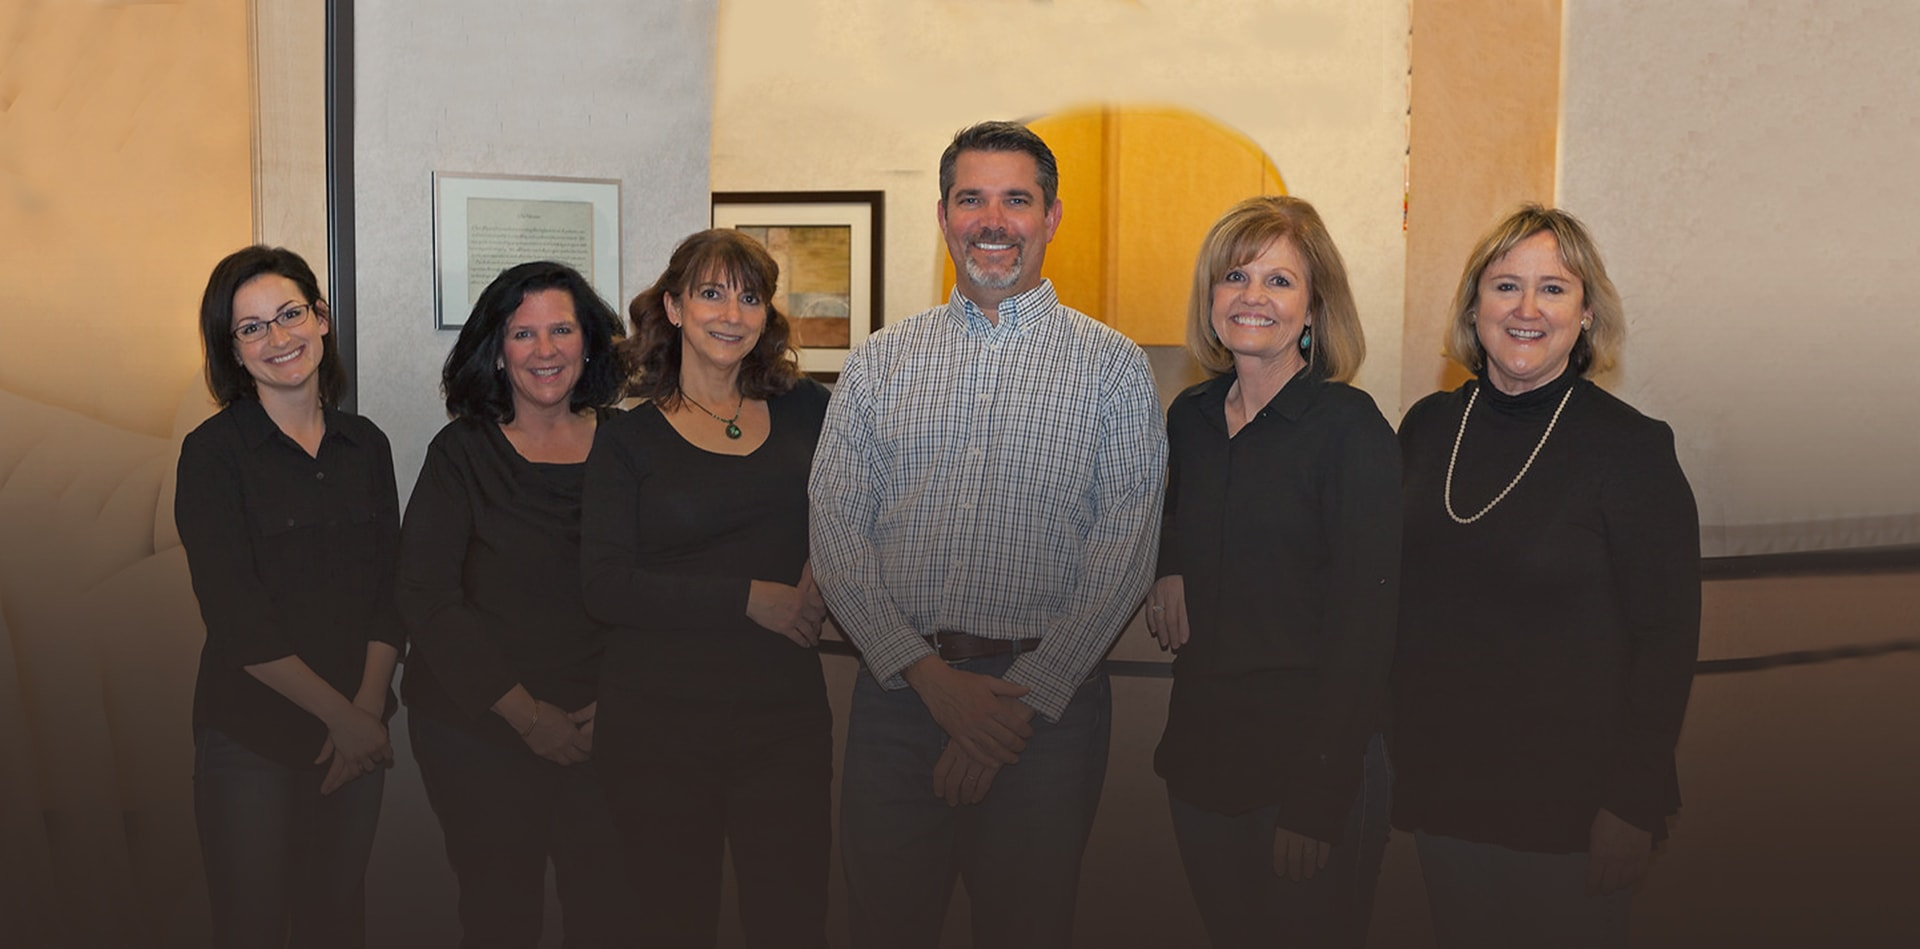 Your Grass Valley dentist and his caring team